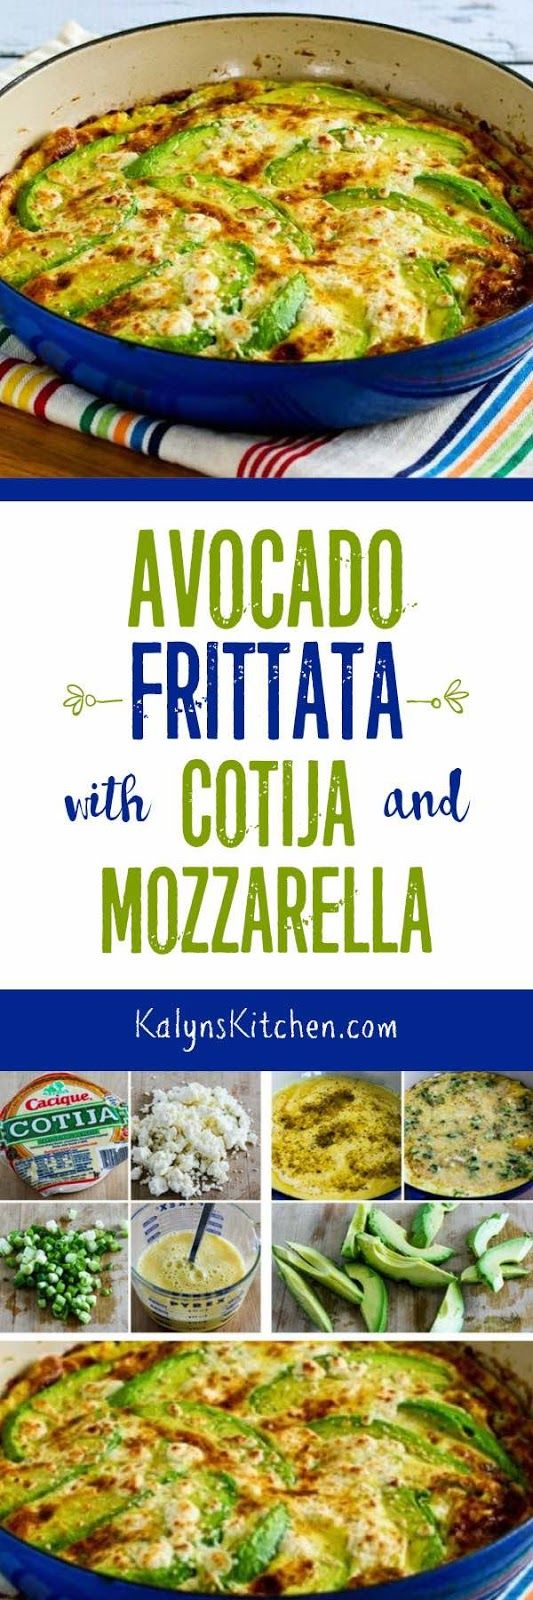 Avocado Frittata with Cotija and Mozzarella Cheese is perfect to make for Easter brunch or overnight guests, or just make it yourself when you need a special treat for breakfast! [found on KalynsKitchen.com]